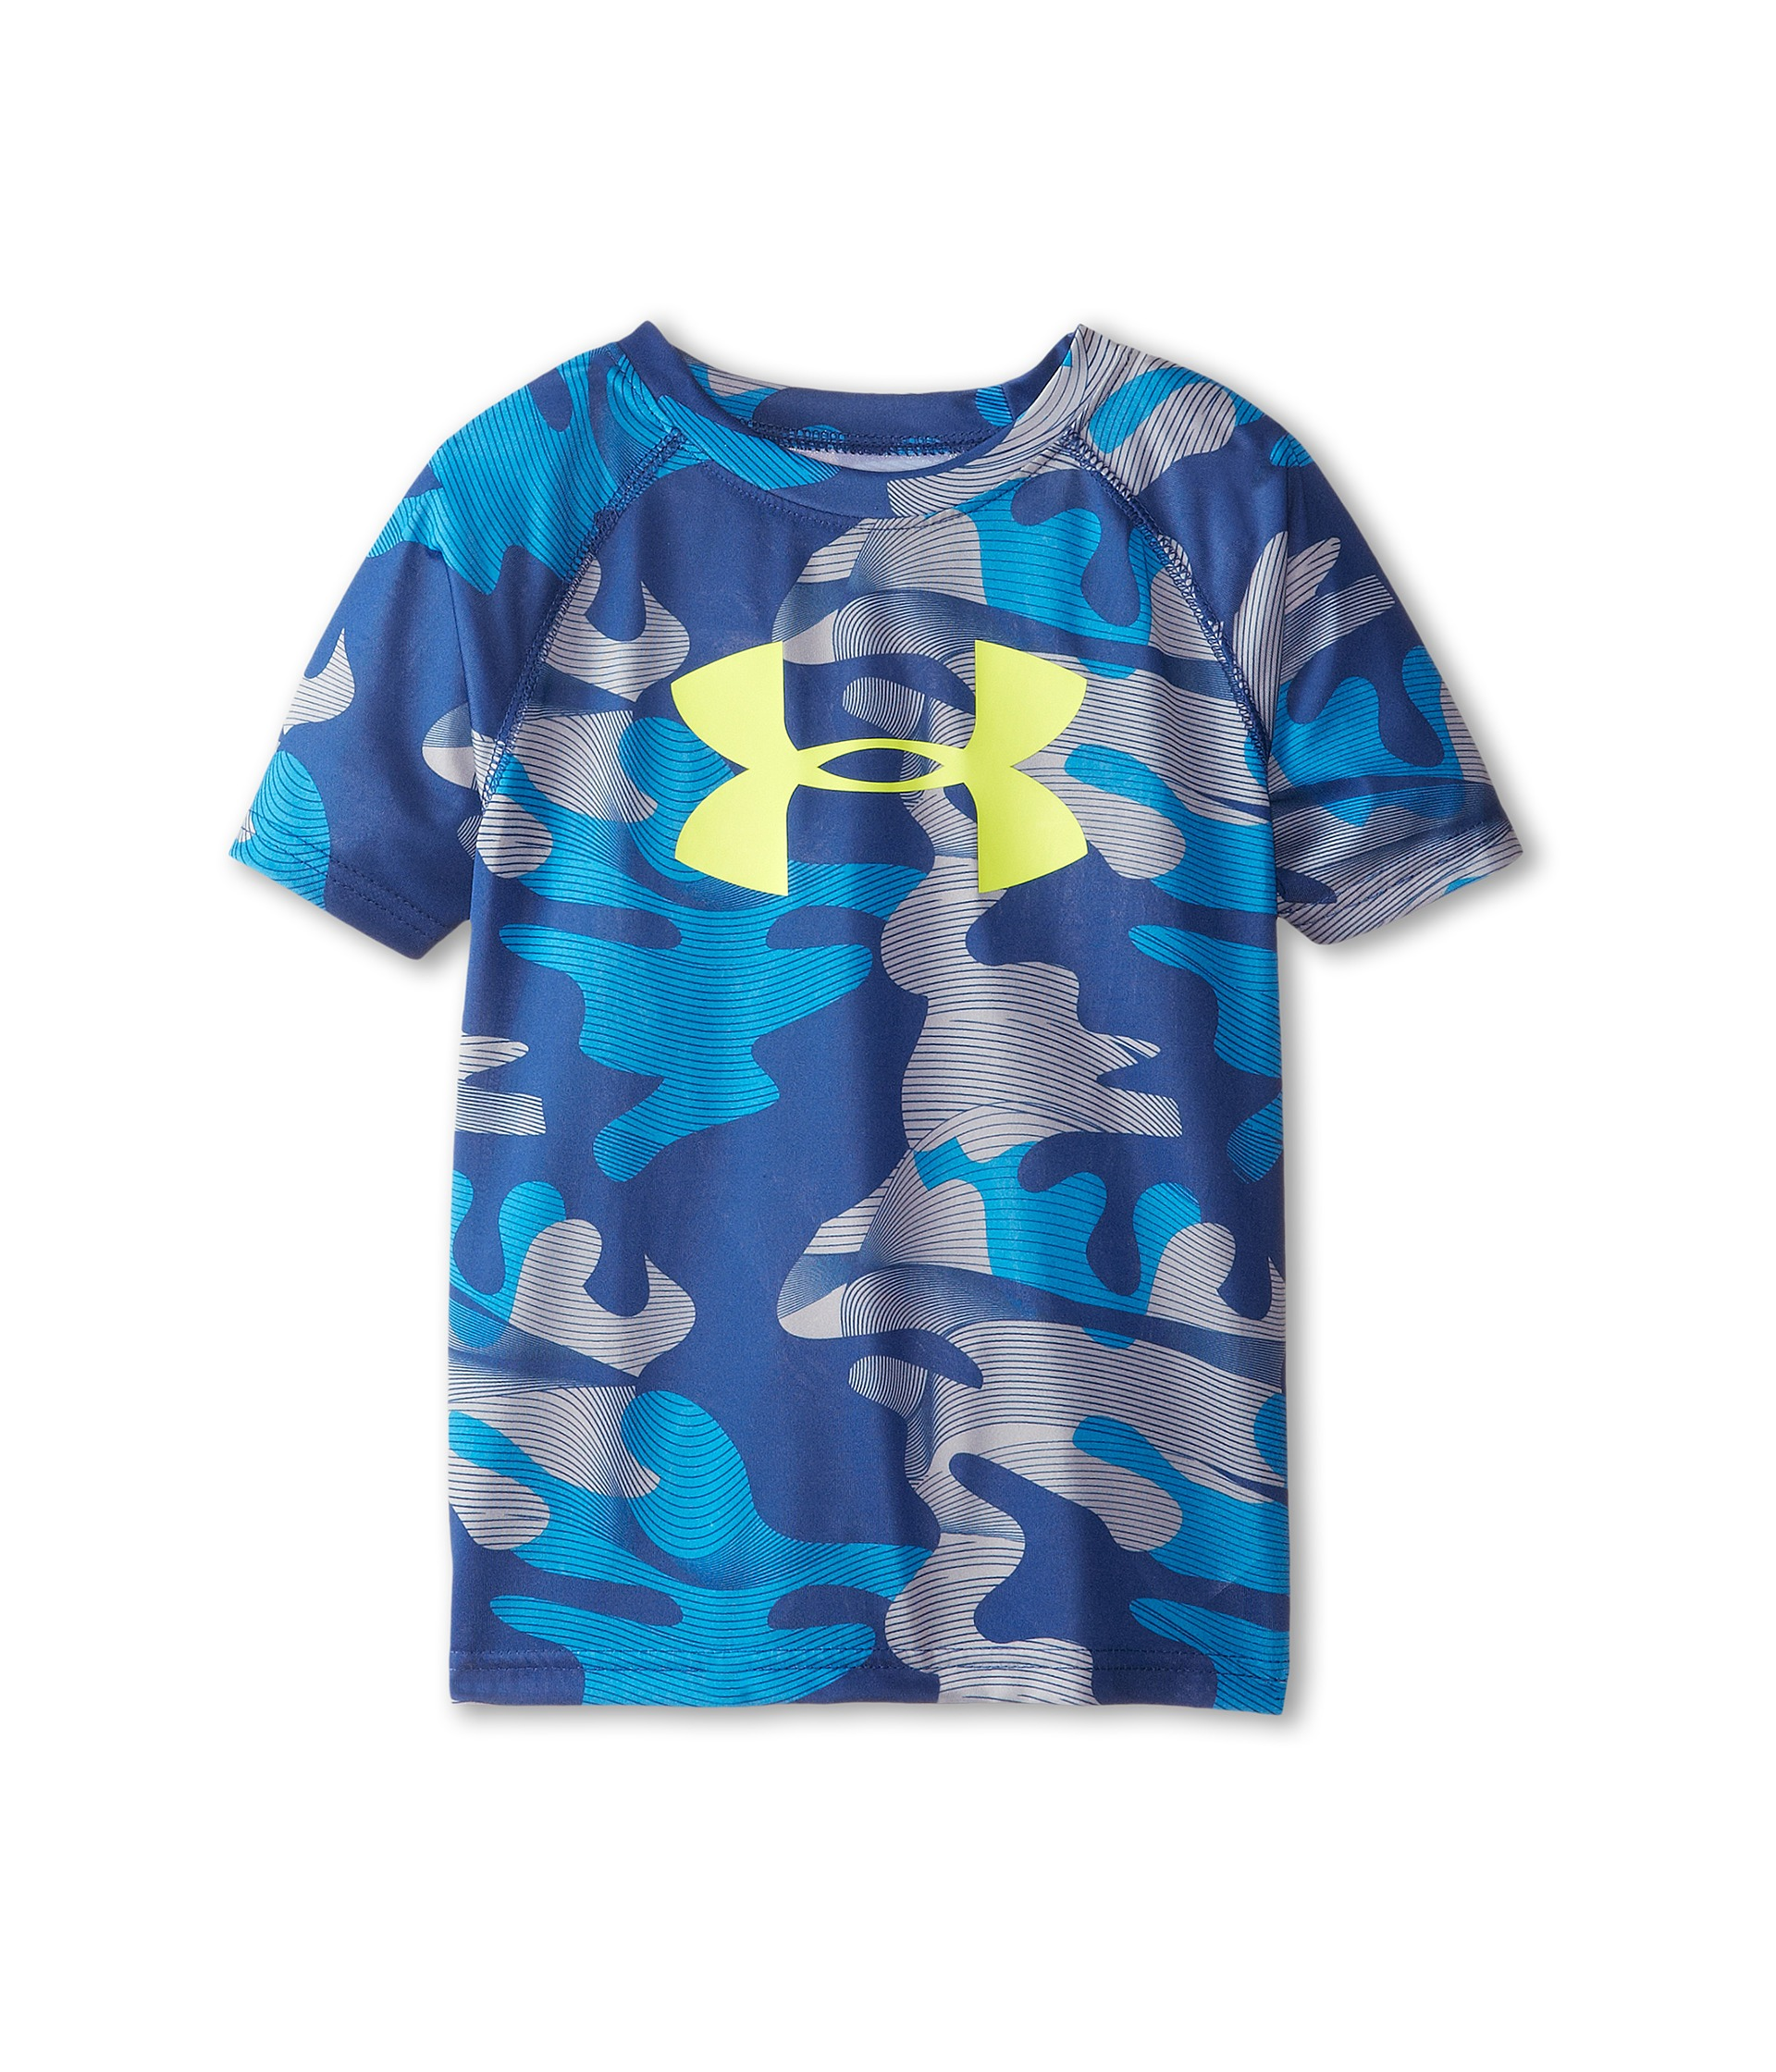 Under Armour Kids キッズ 男の子 パーカー スウェット 送料無料 Steel/Graphite UA Rival Camo Fill Hoodie (Big Kids) Find your ultimate adventure out in the wild with the UA Rival Camo .